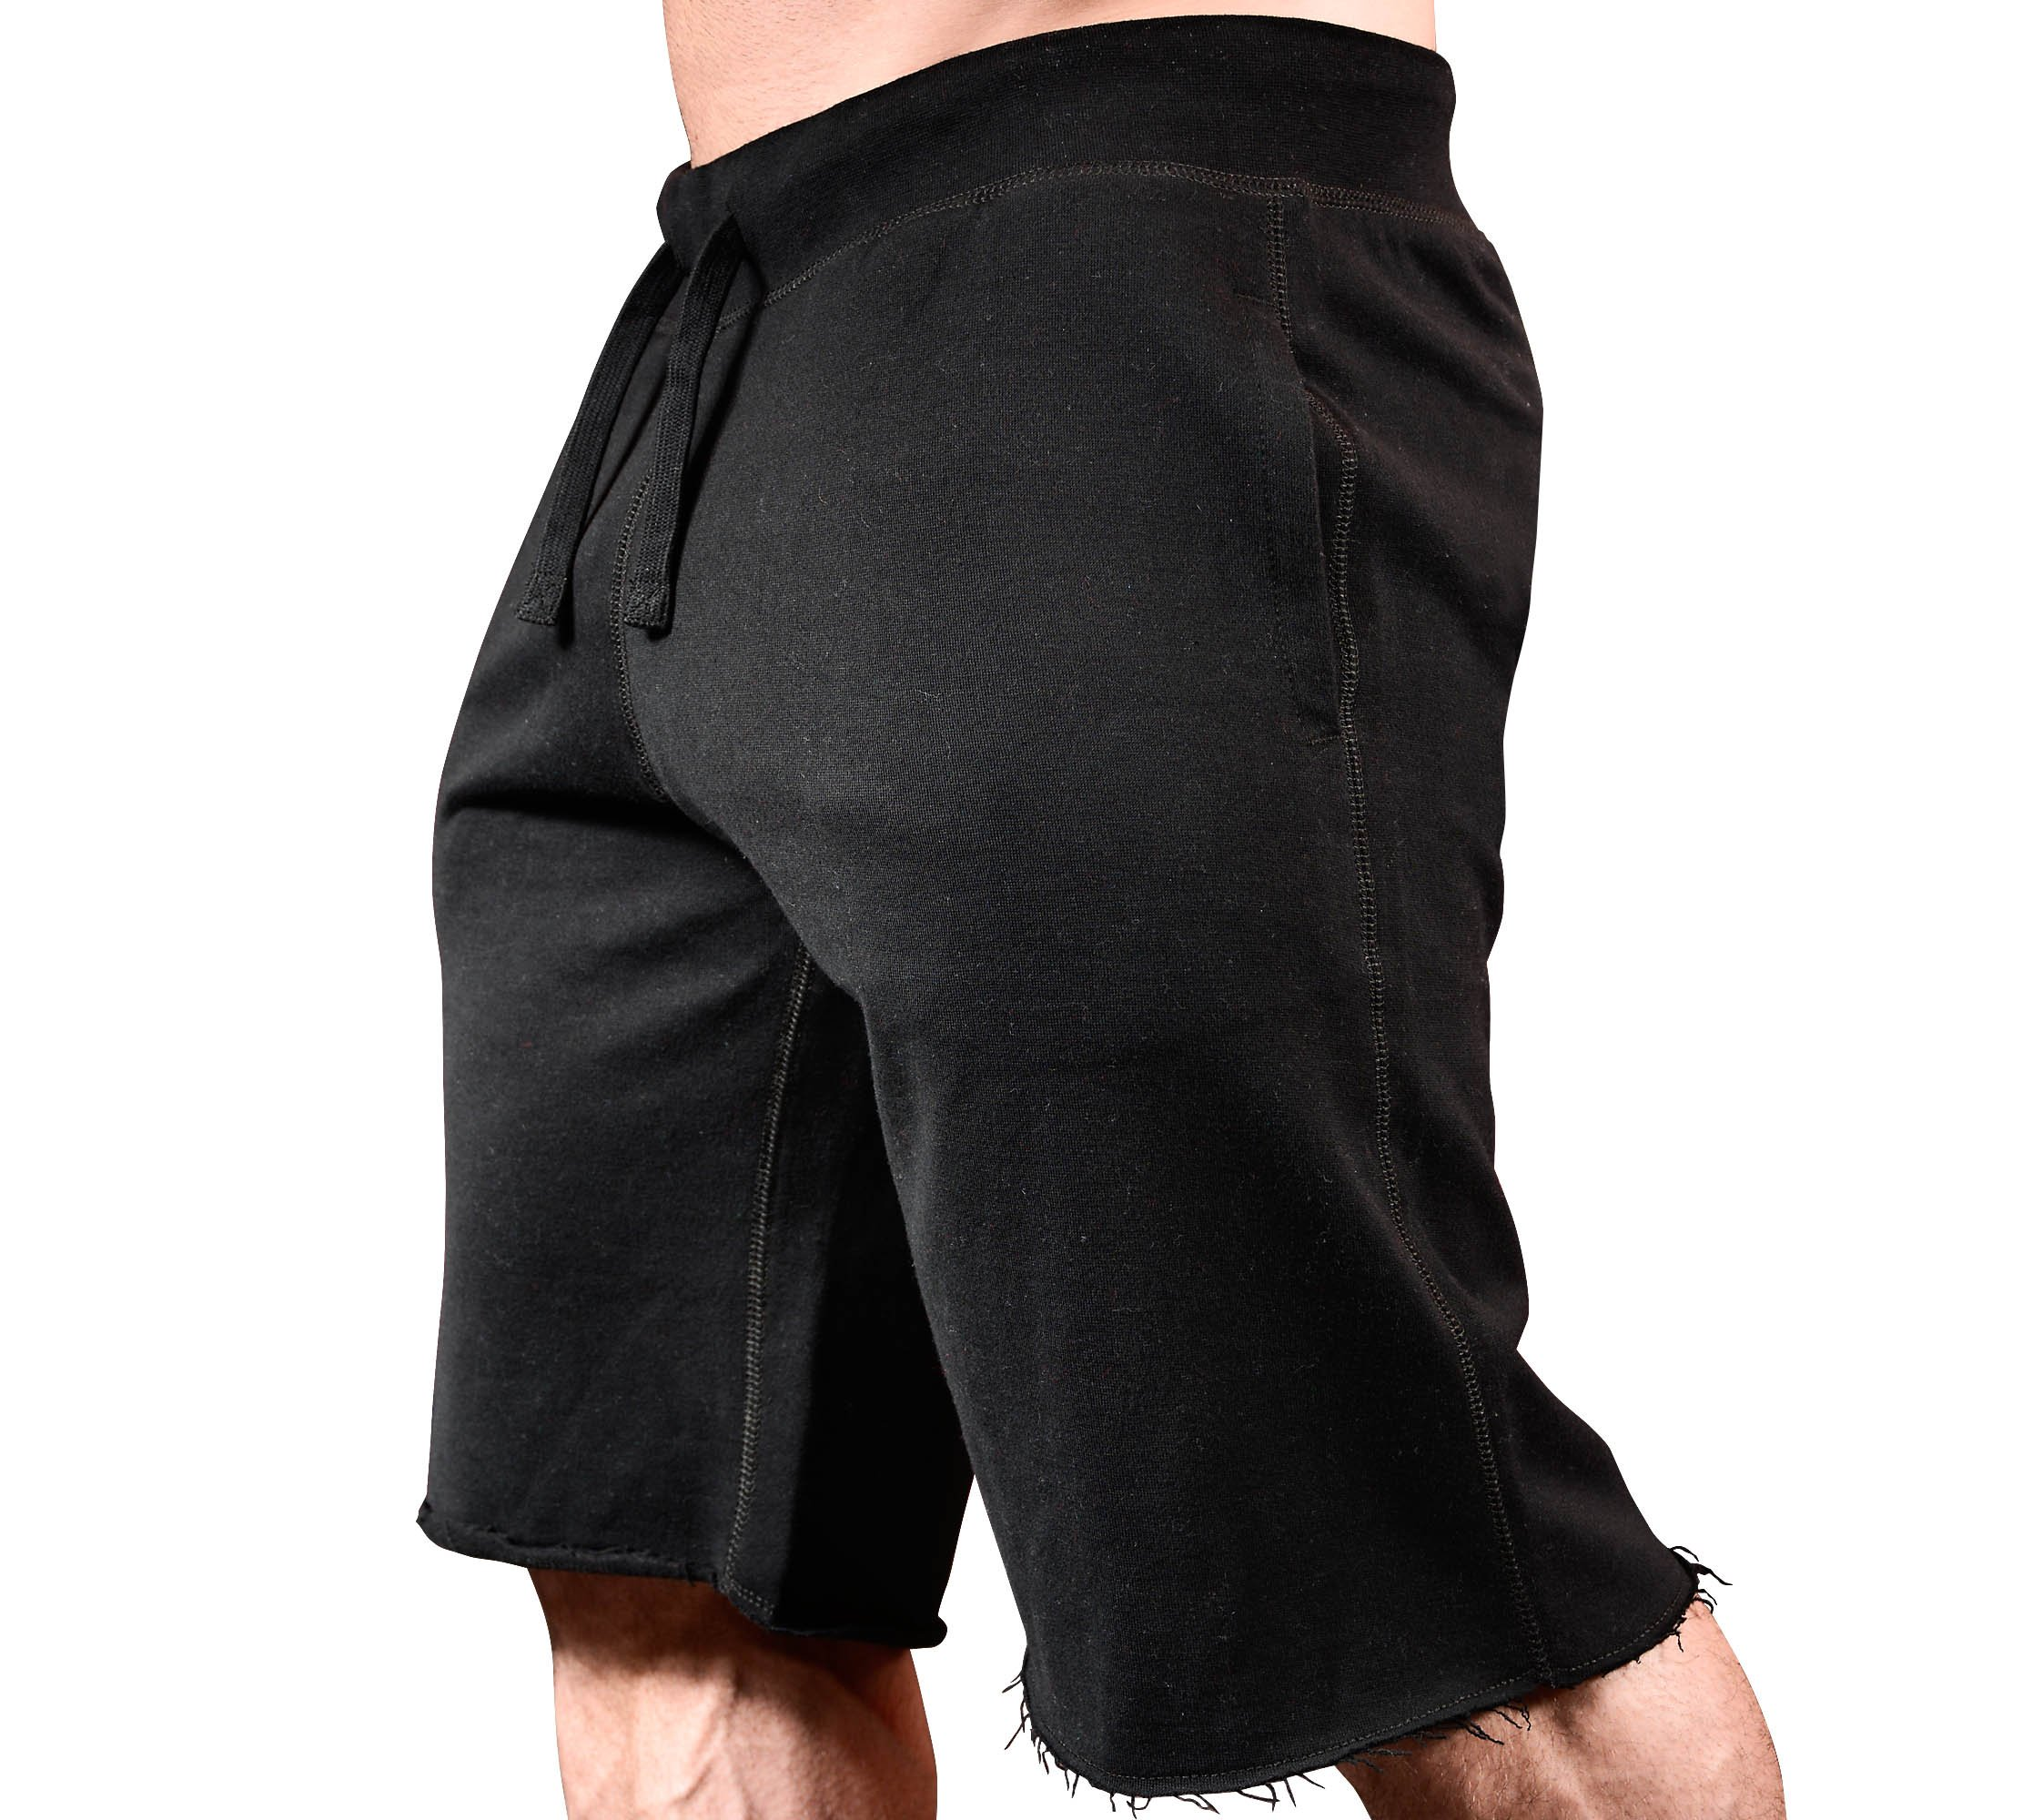 HRD LVN Mens Workout Shorts Classic Black by Monsta Clothing Co.